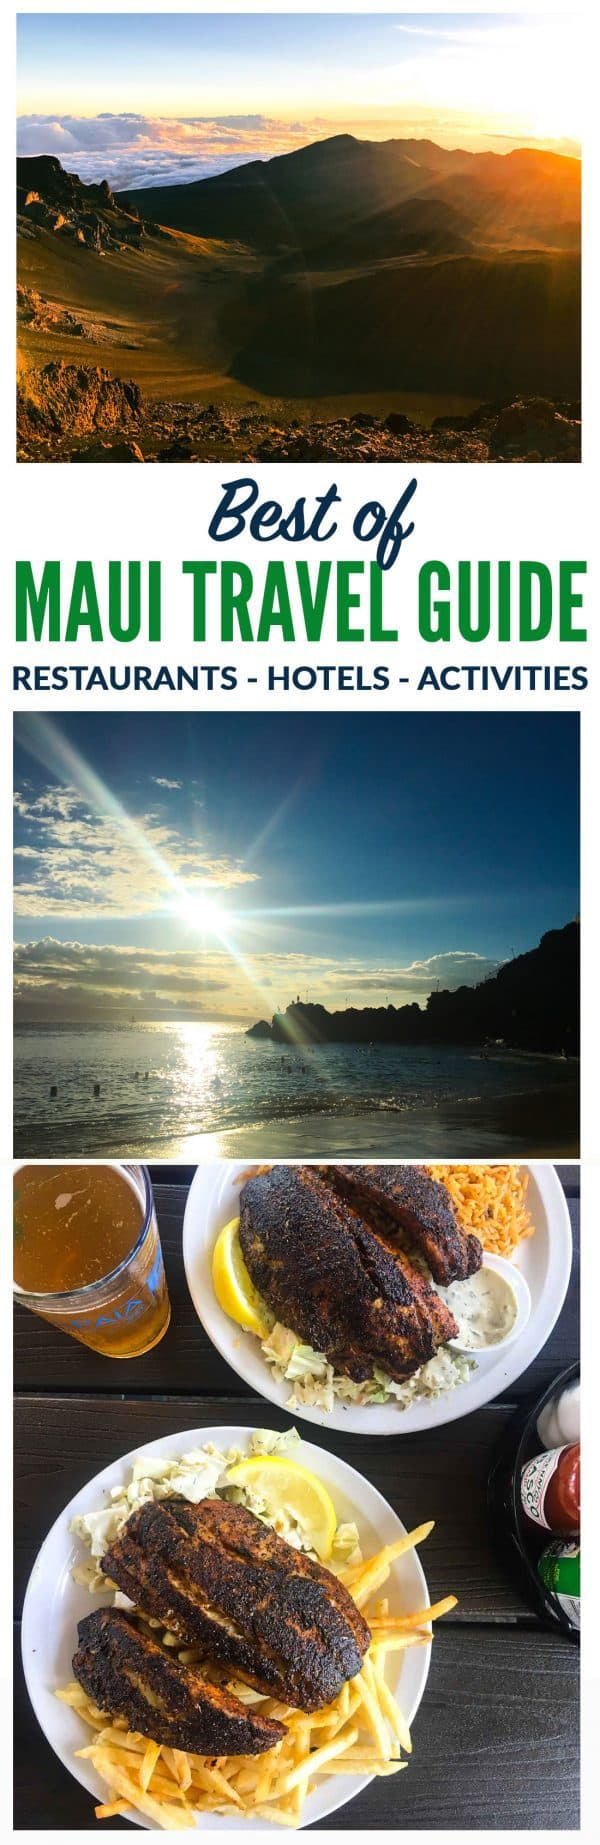 What to See, Do and Eat in Maui. Things to do, beaches, and best restaurants. This is the Ultimate Maui Travel Guide! Everything you need to know to plan the perfect trip. Includes a four day Maui itinerary with all of the top Maui sites and Maui restaurants. #maui #hawaii #travel